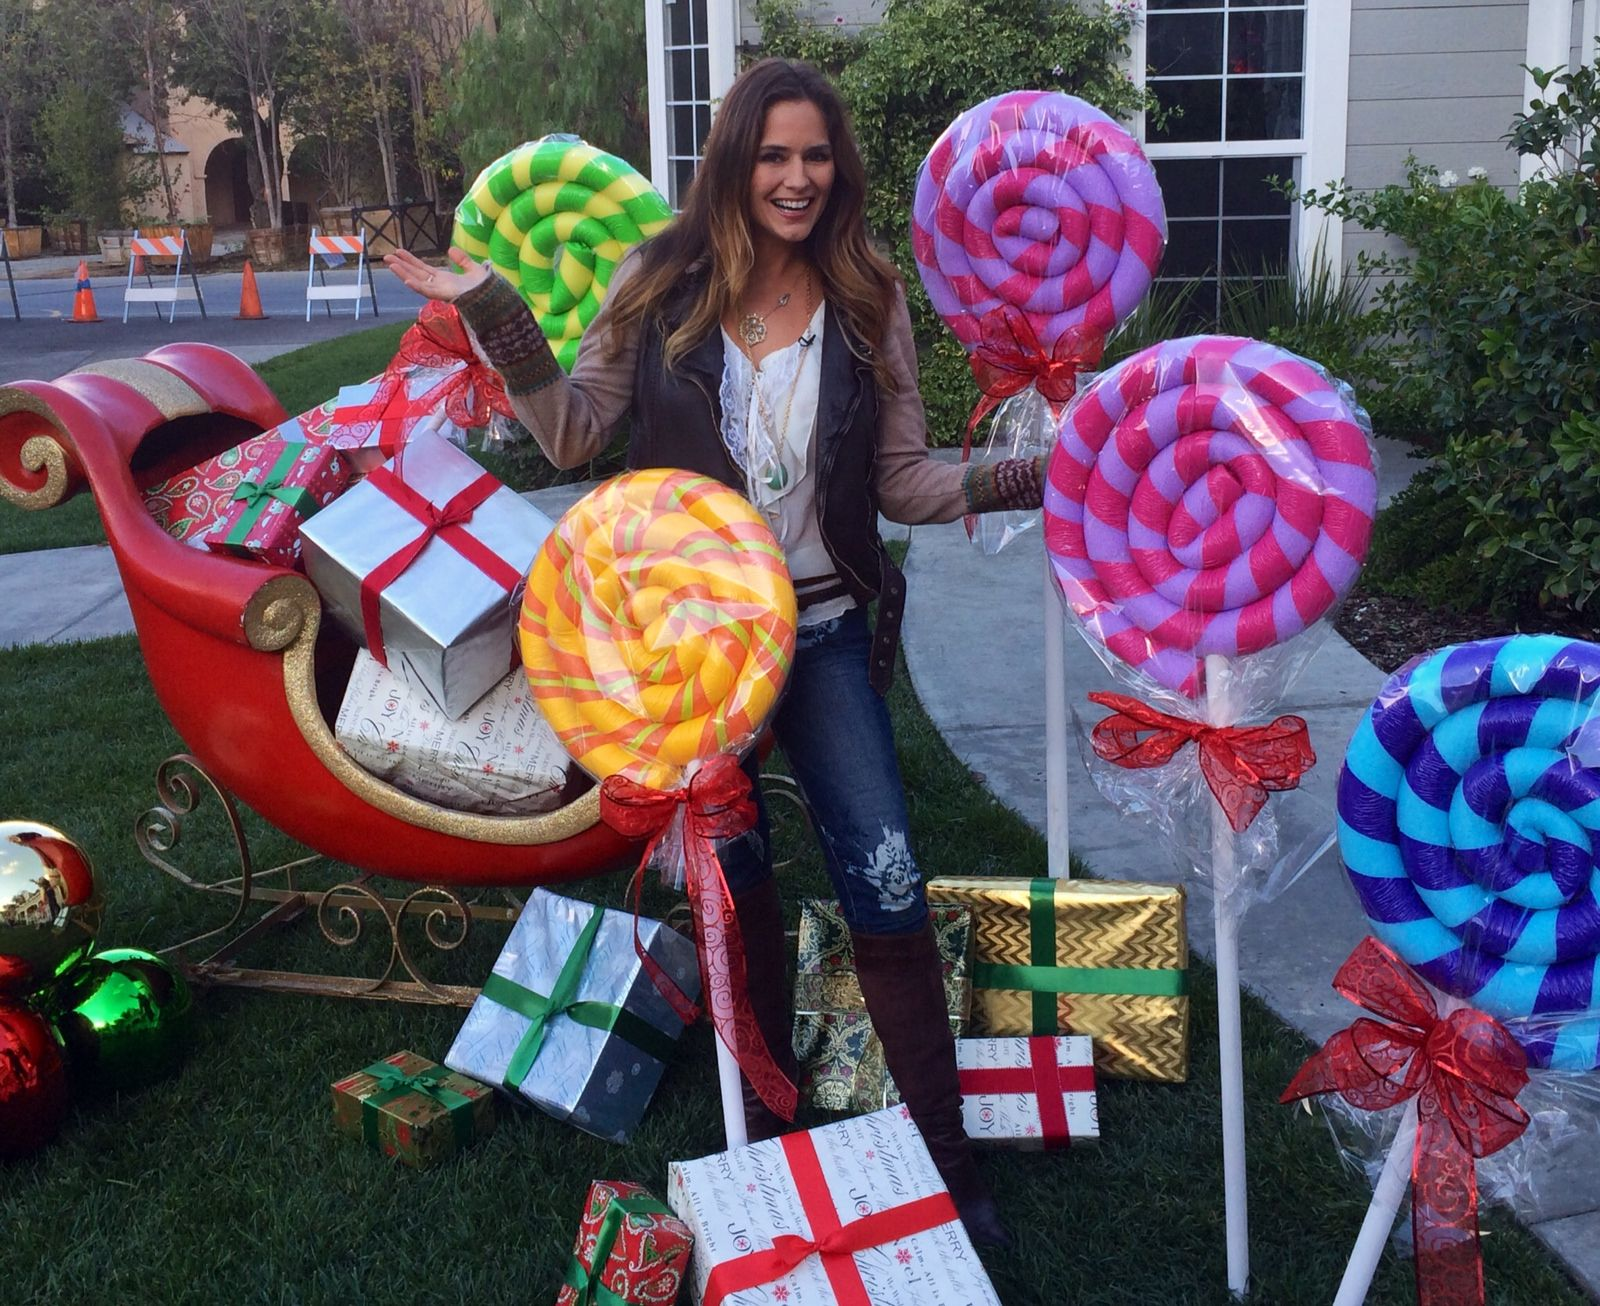 Giant Lollipop Decorations From Pool Noodles And Pvc Pipe